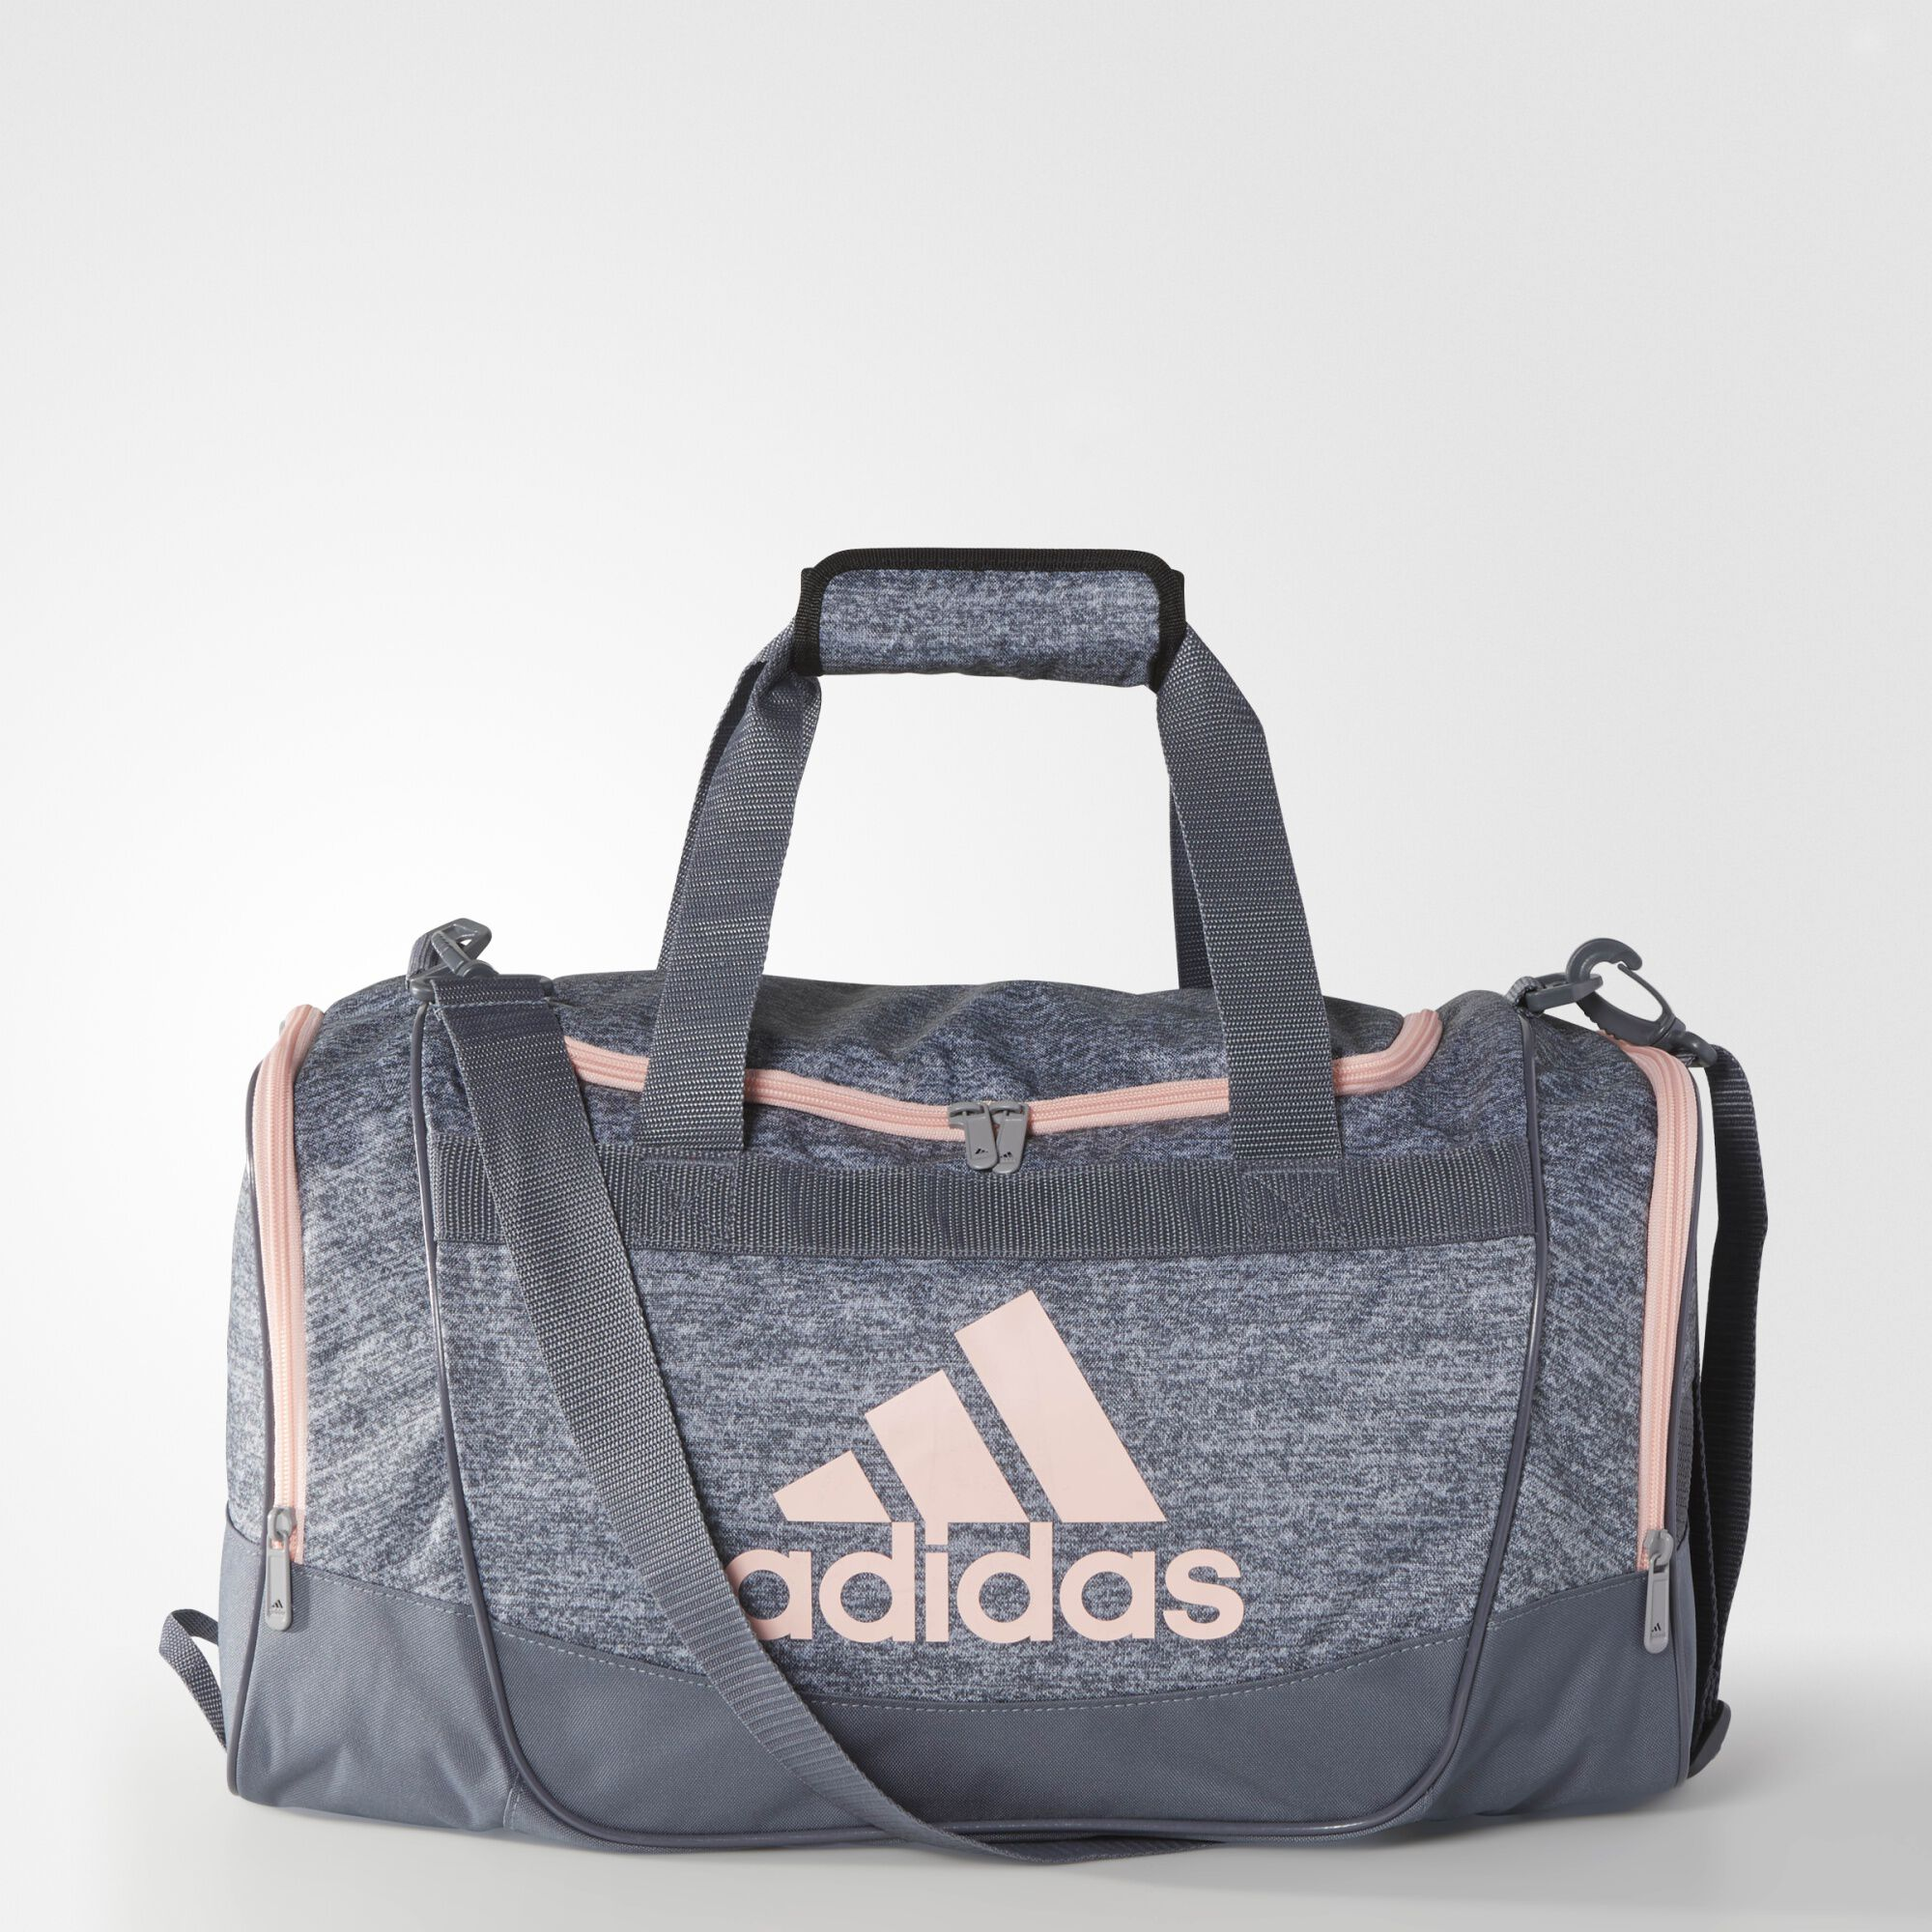 Adidas Duffle Bag Small